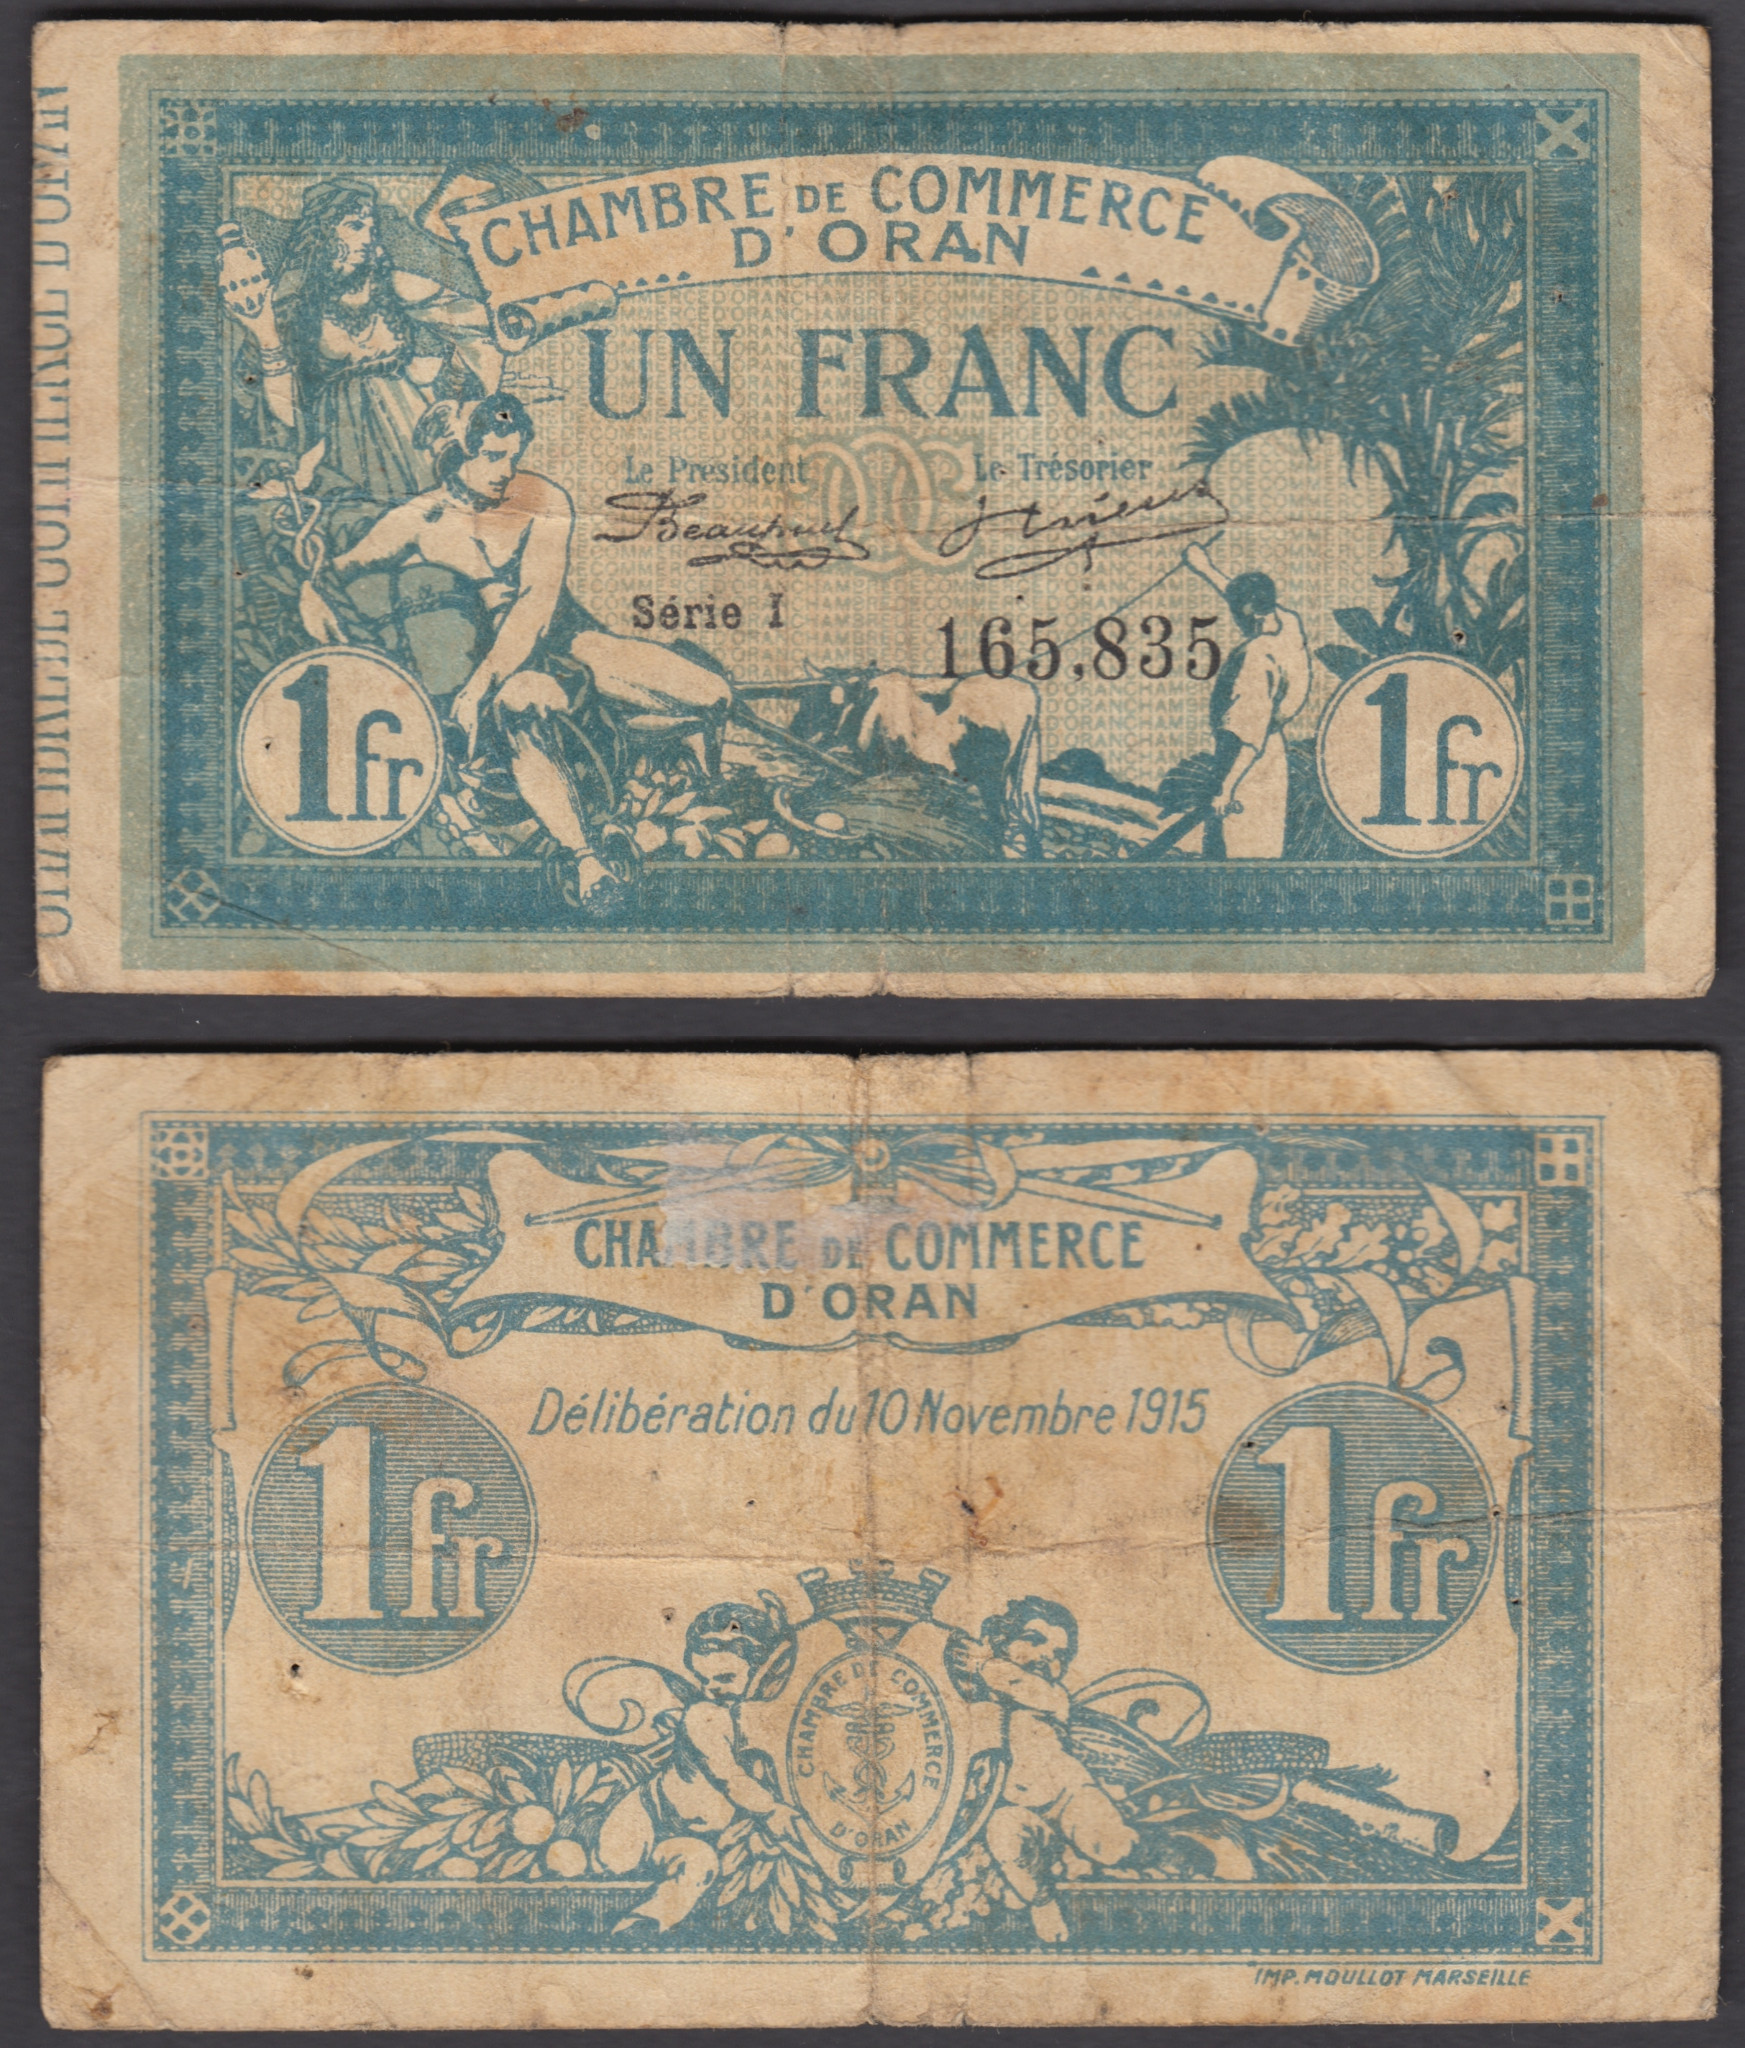 Chambre De Commerce Zimbabwe Details About Algeria 1 Franc 1915 1918 Banknote F Condition Banknote Oran French